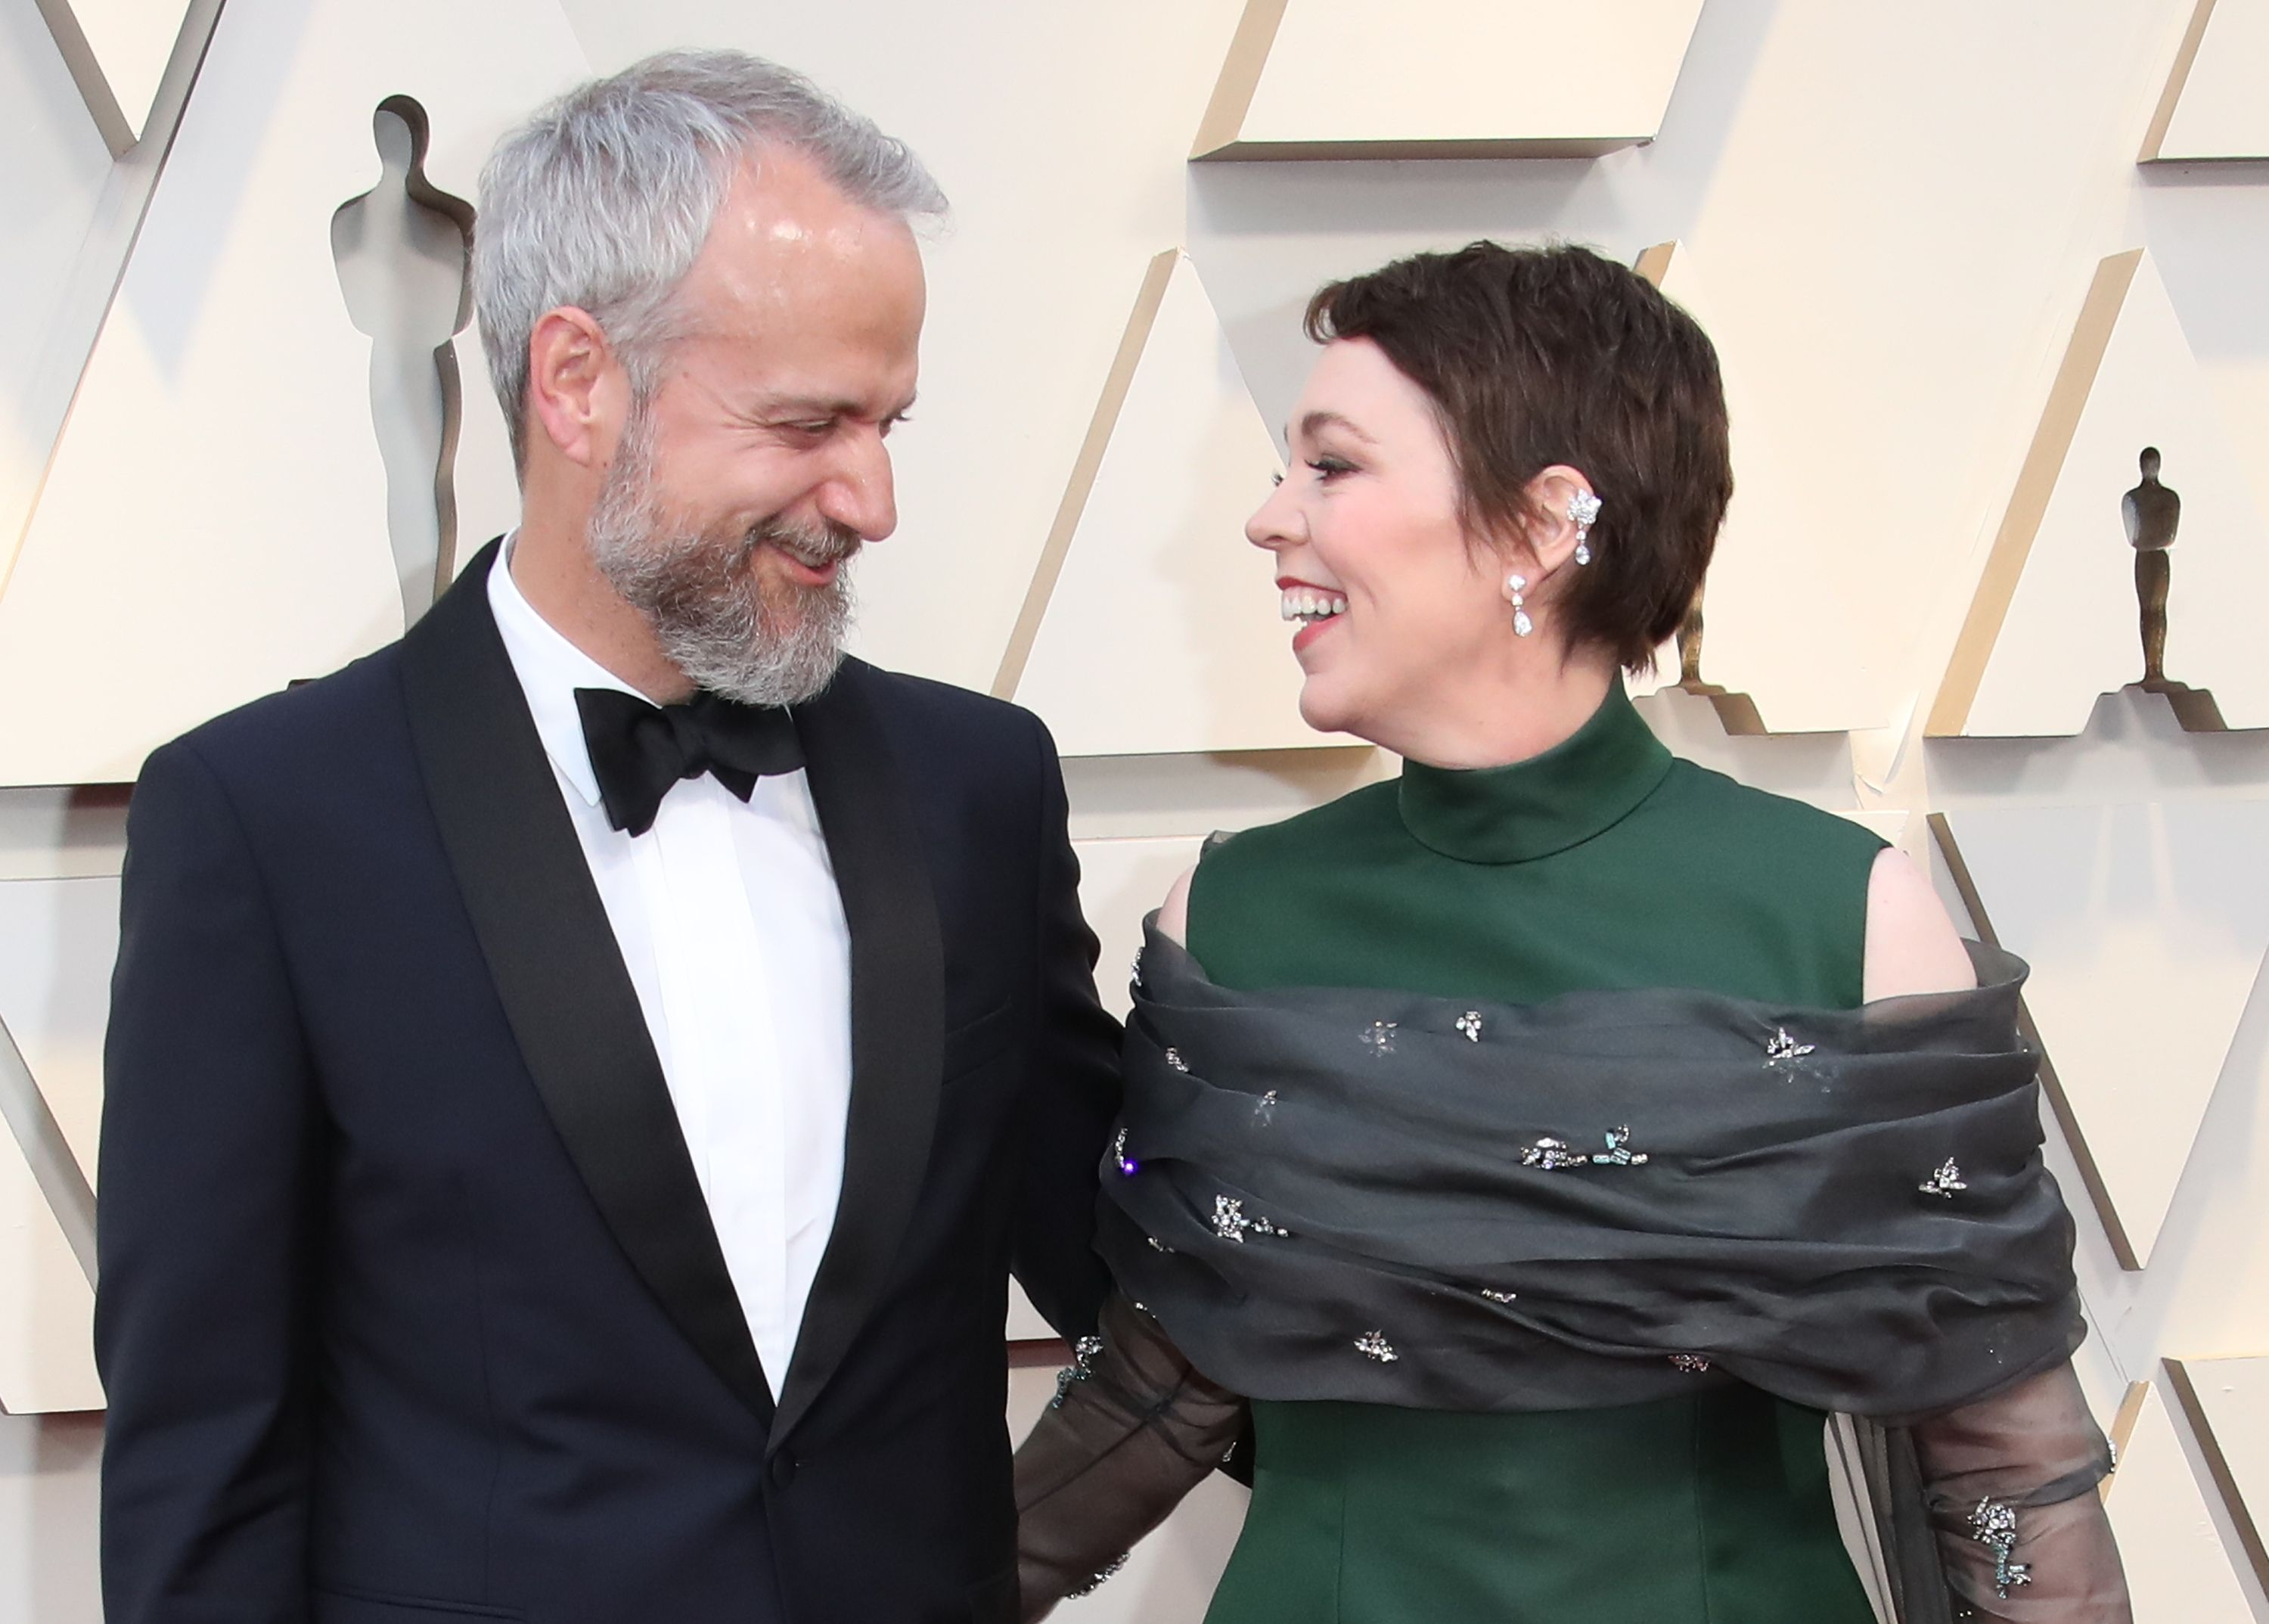 Ed Sinclair and Olivia Colman during the 91st Annual Academy Awards at Hollywood and Highland on February 24, 2019 in Hollywood, California. | Source: Getty Images